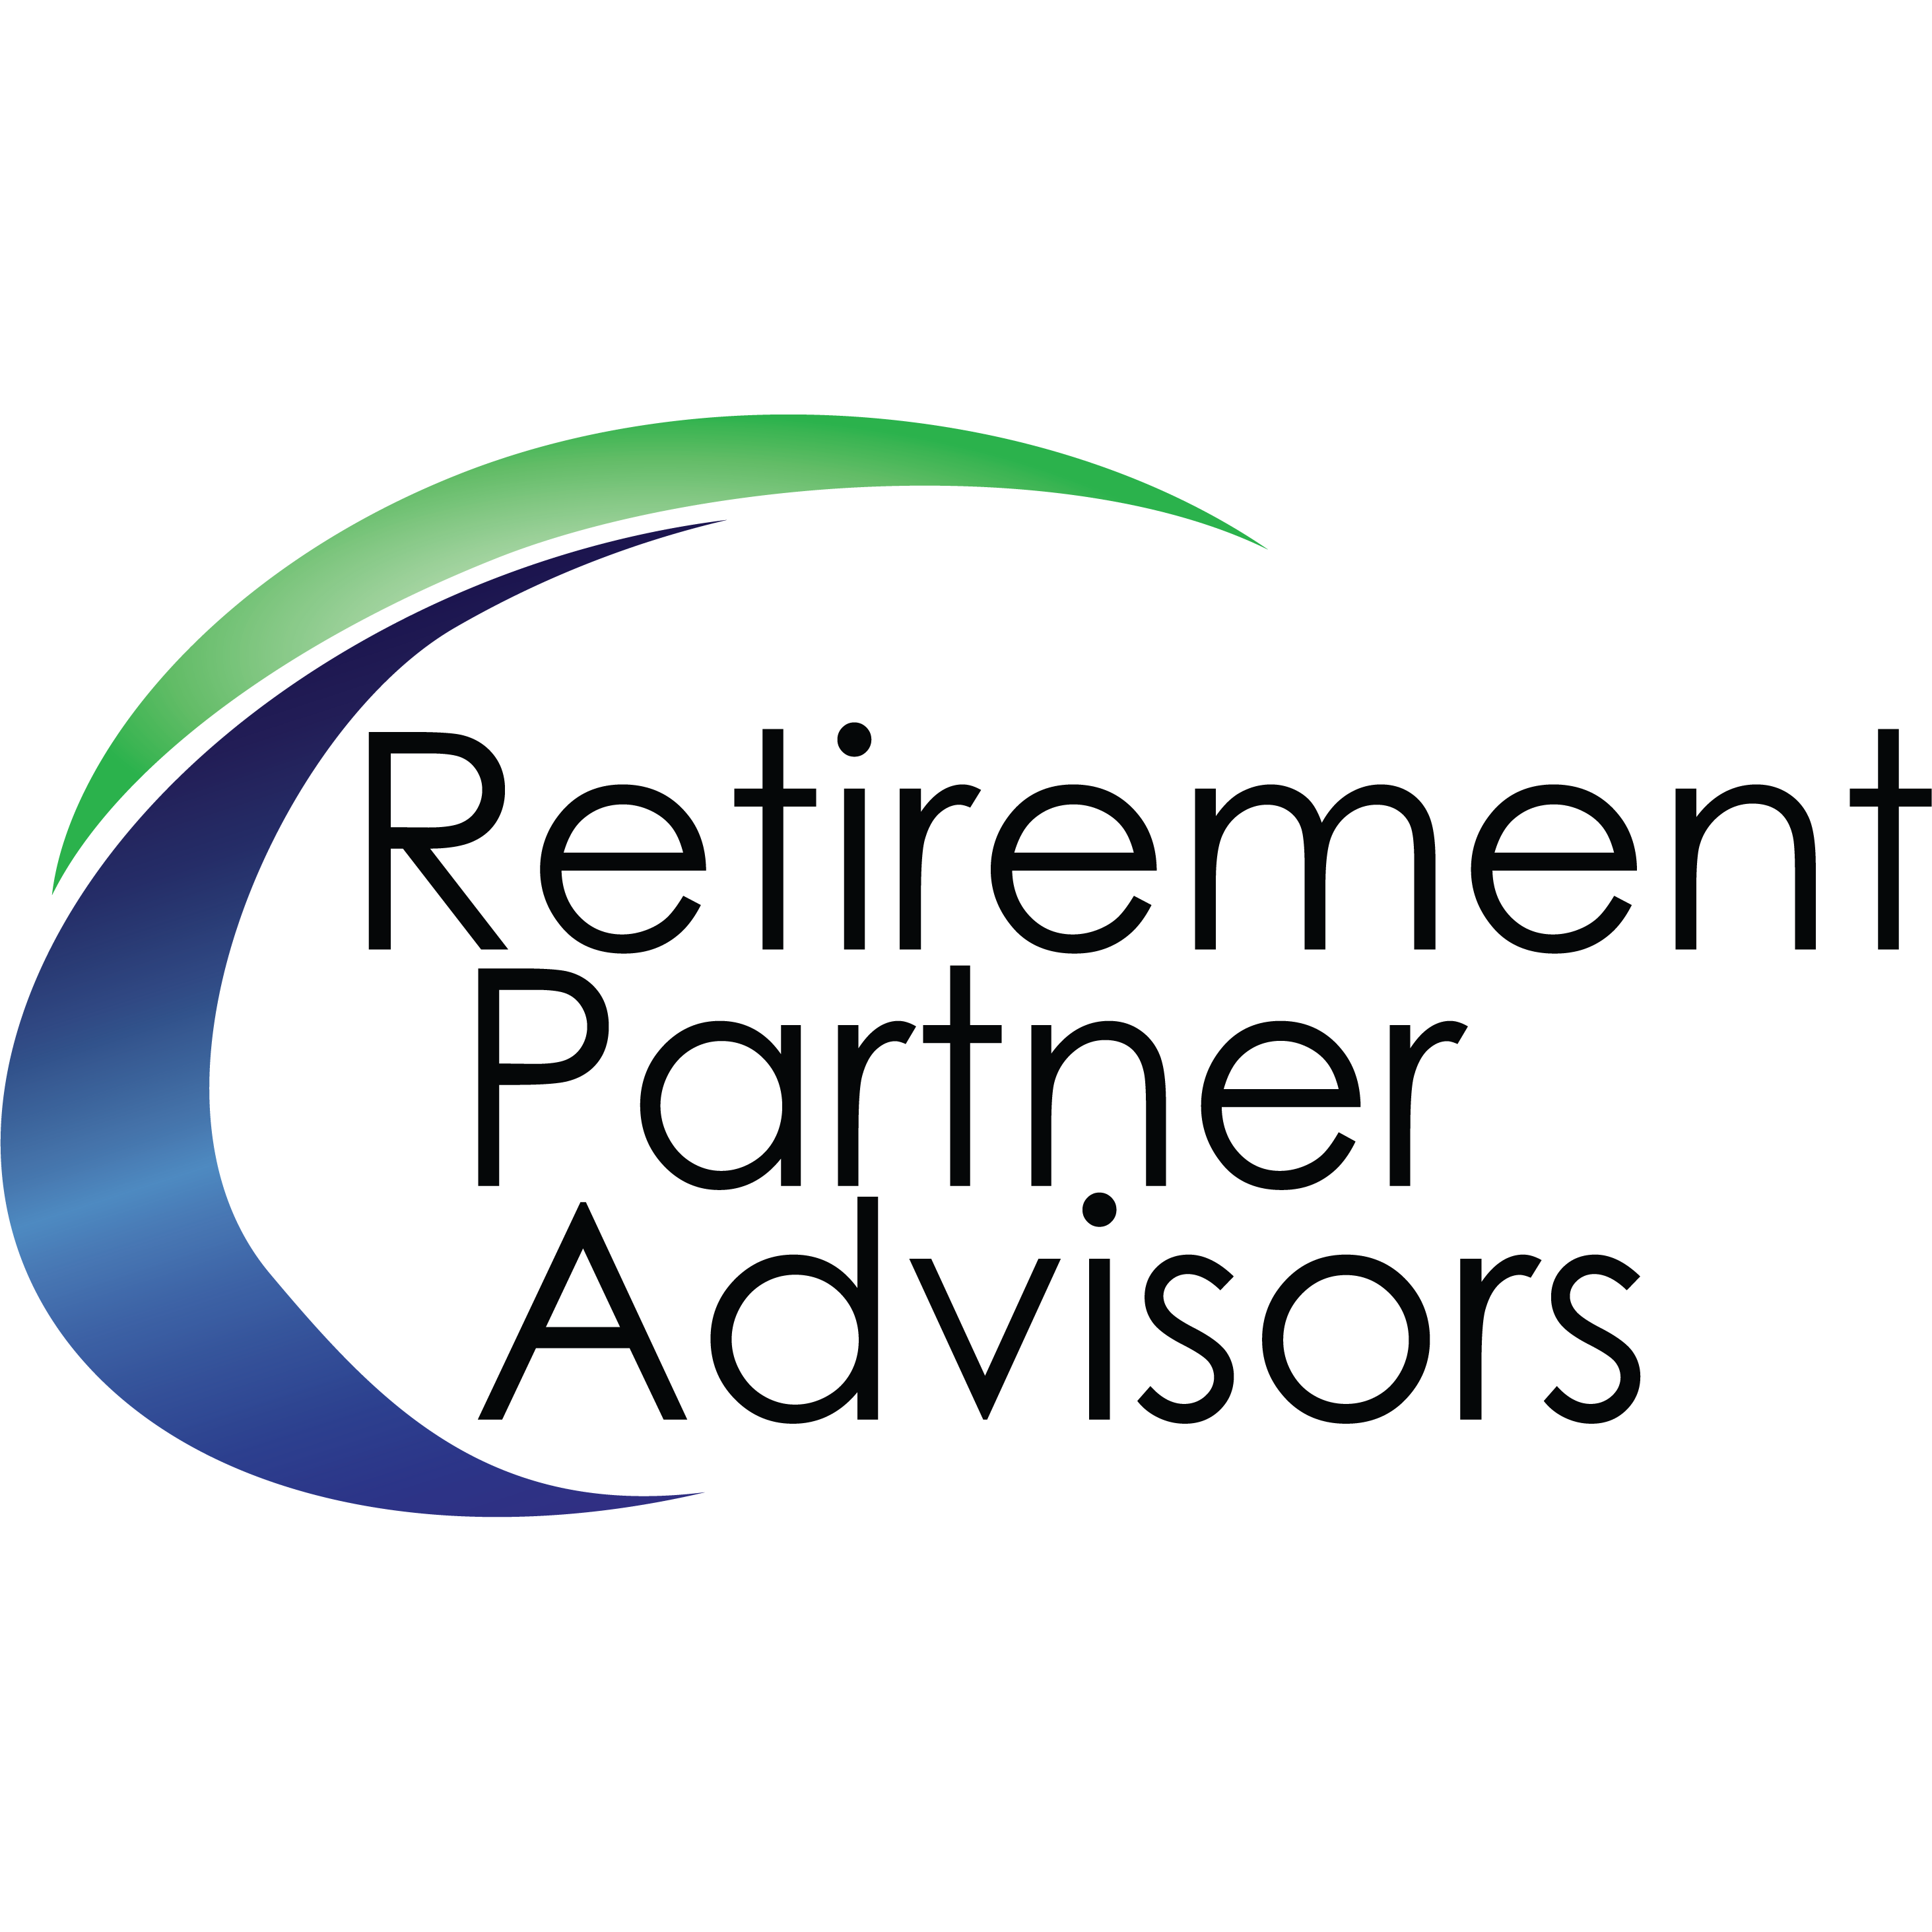 Retirement Partner Advisors